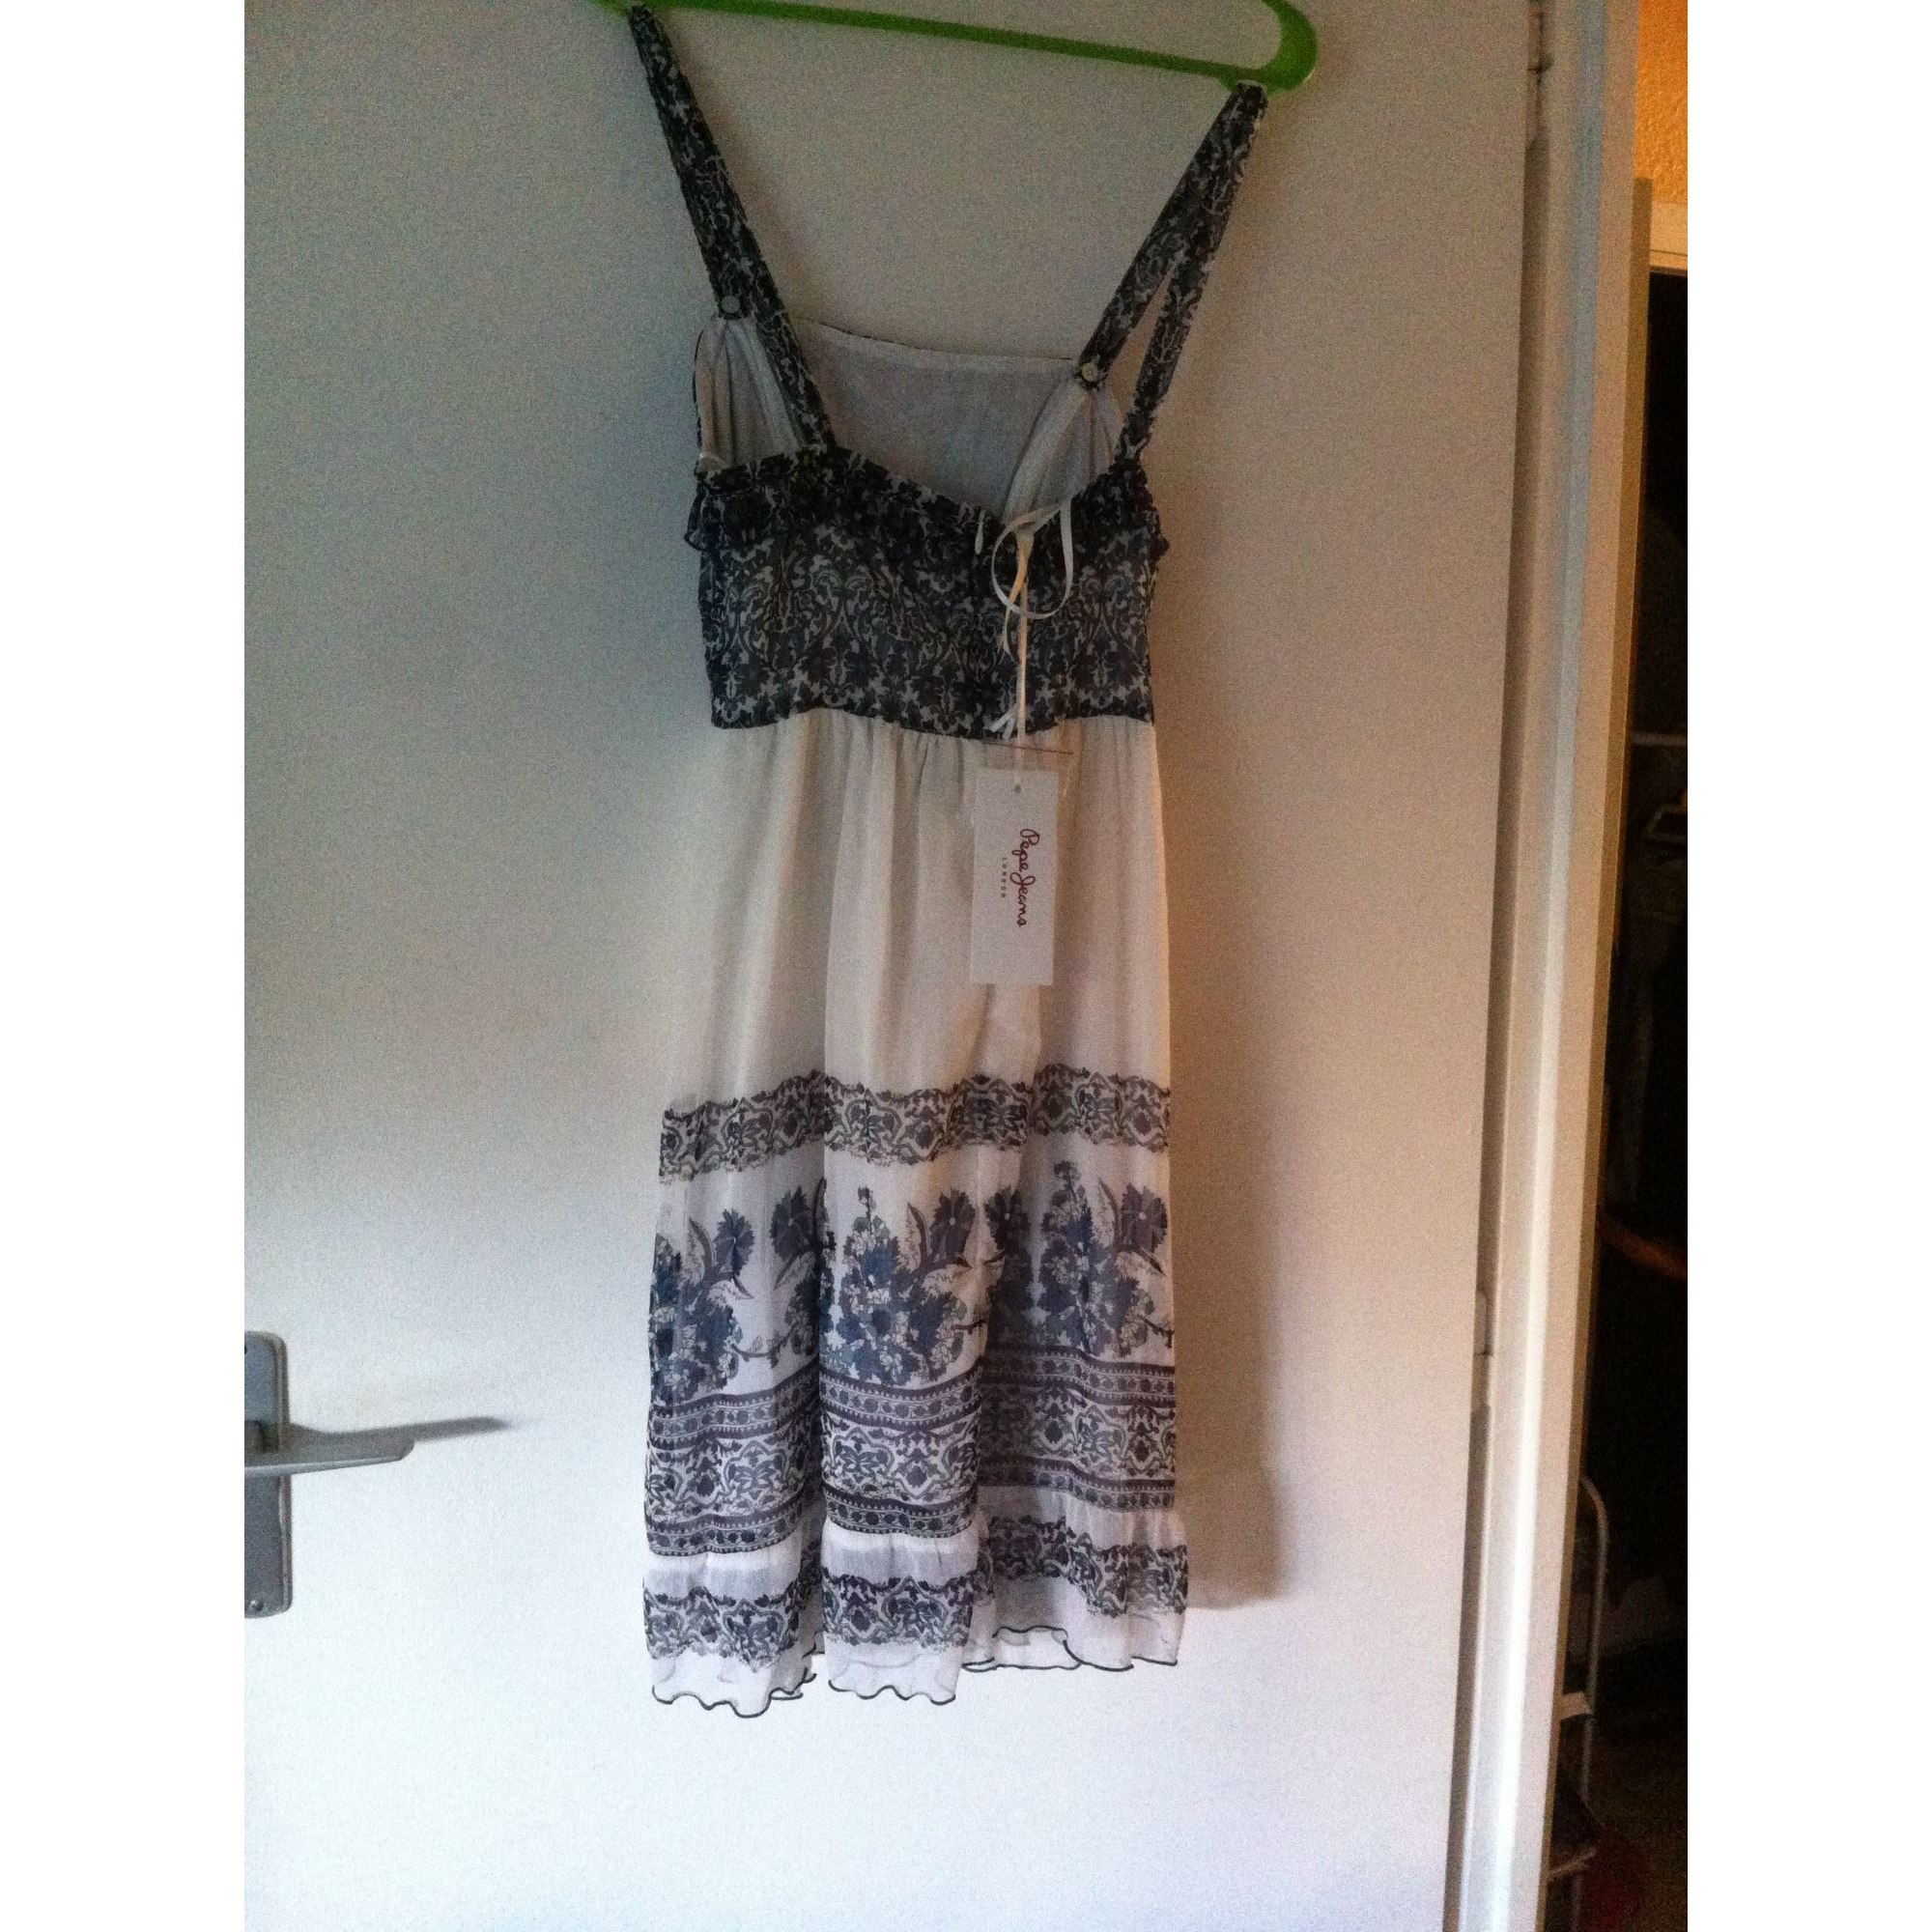 Robe bustier pepe jeans